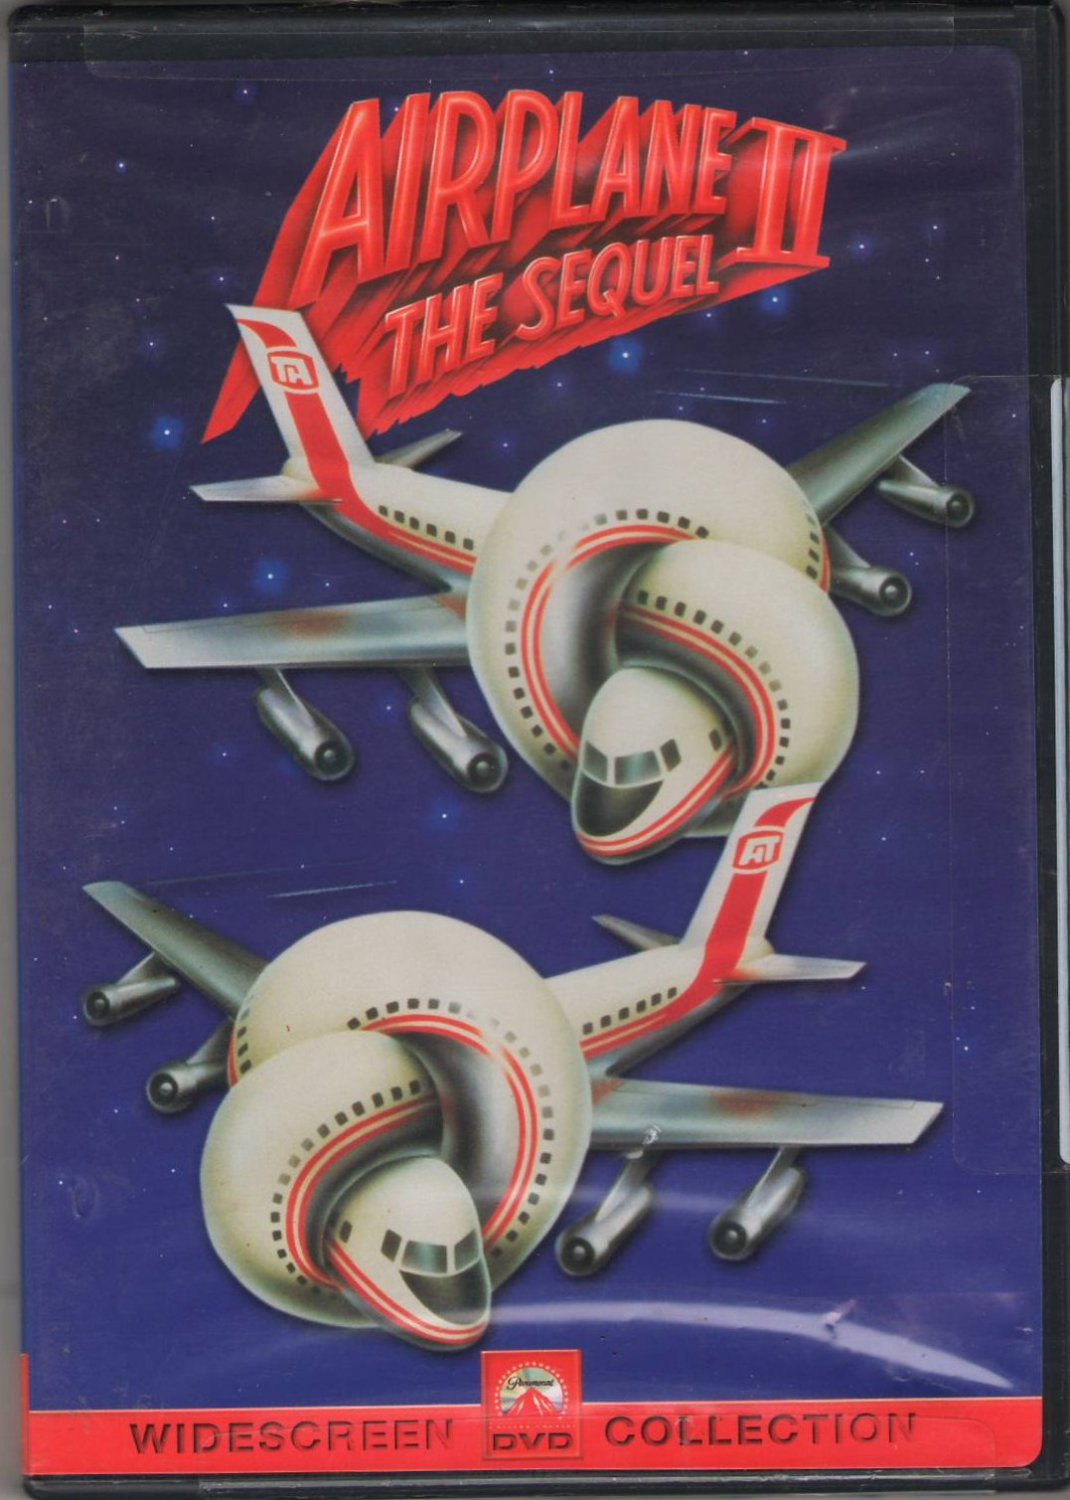 Airplane II The Sequel Roberts Hays Julie Hagerty Mad Bomber On Board Widescreen PG DVD Movie